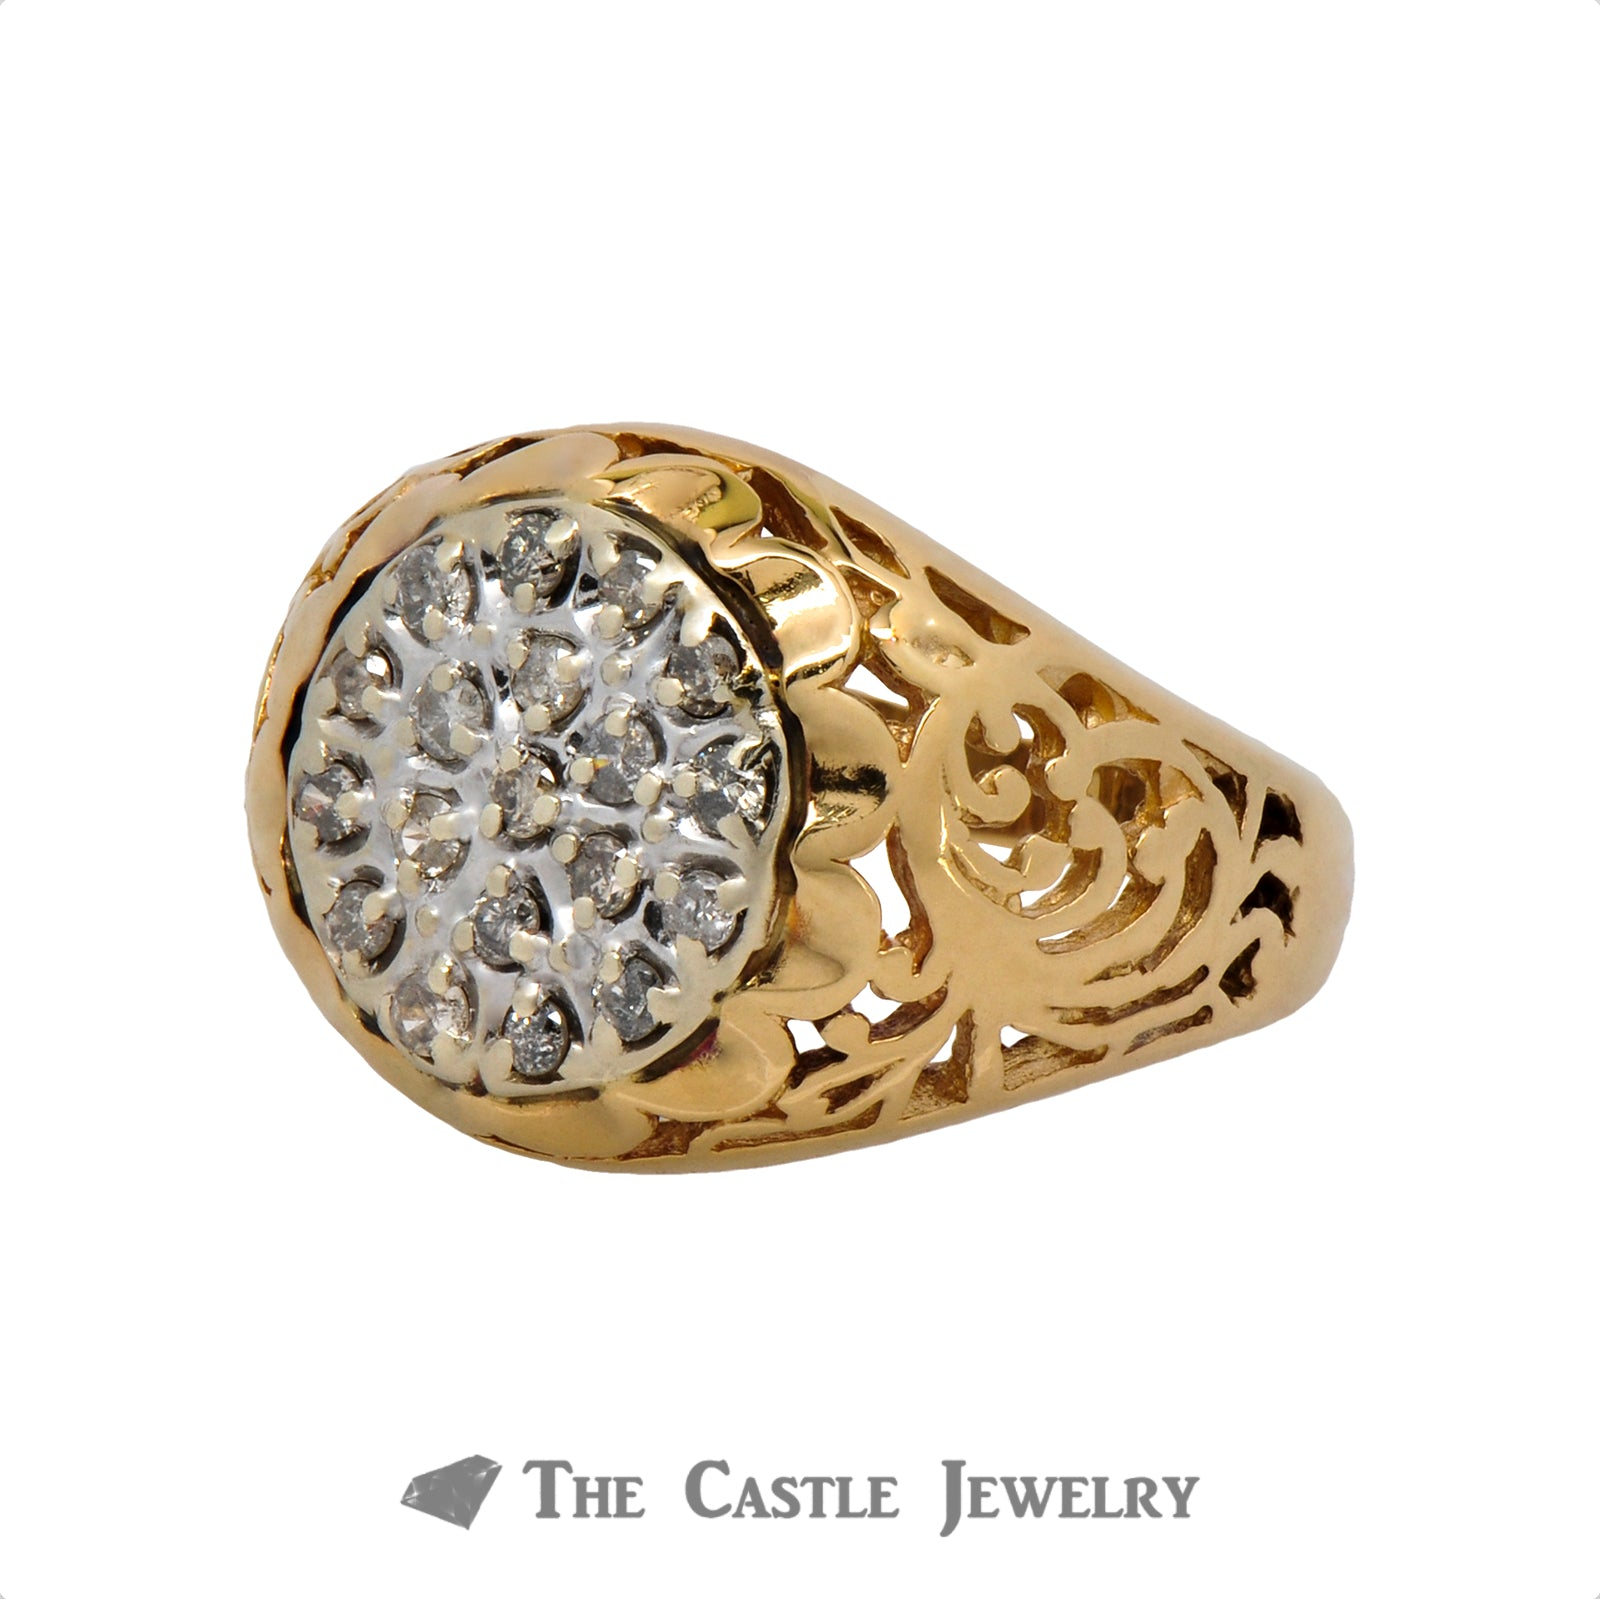 19 Diamond Kentucky Cluster Ring in 10K Yellow Gold-2